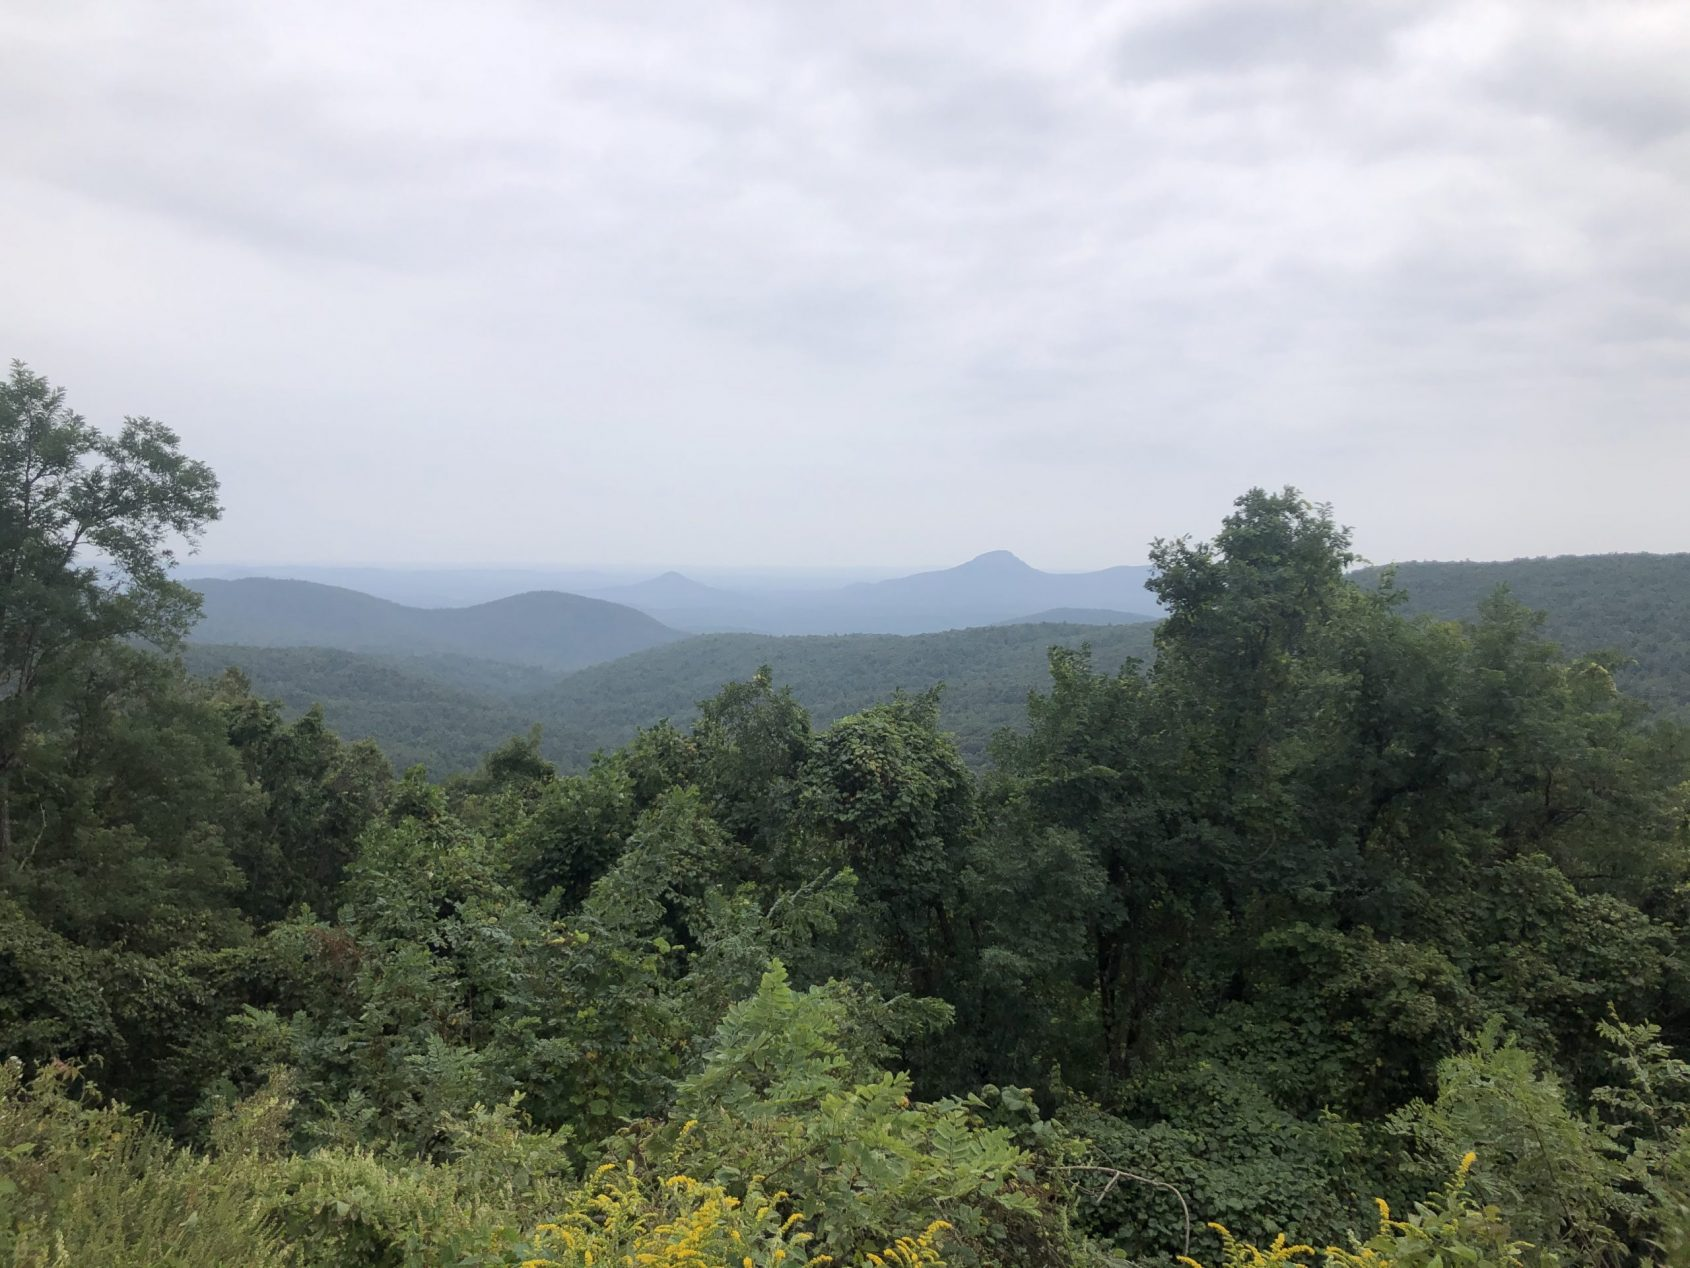 Blue Ridge Mountain View for sustainable travel